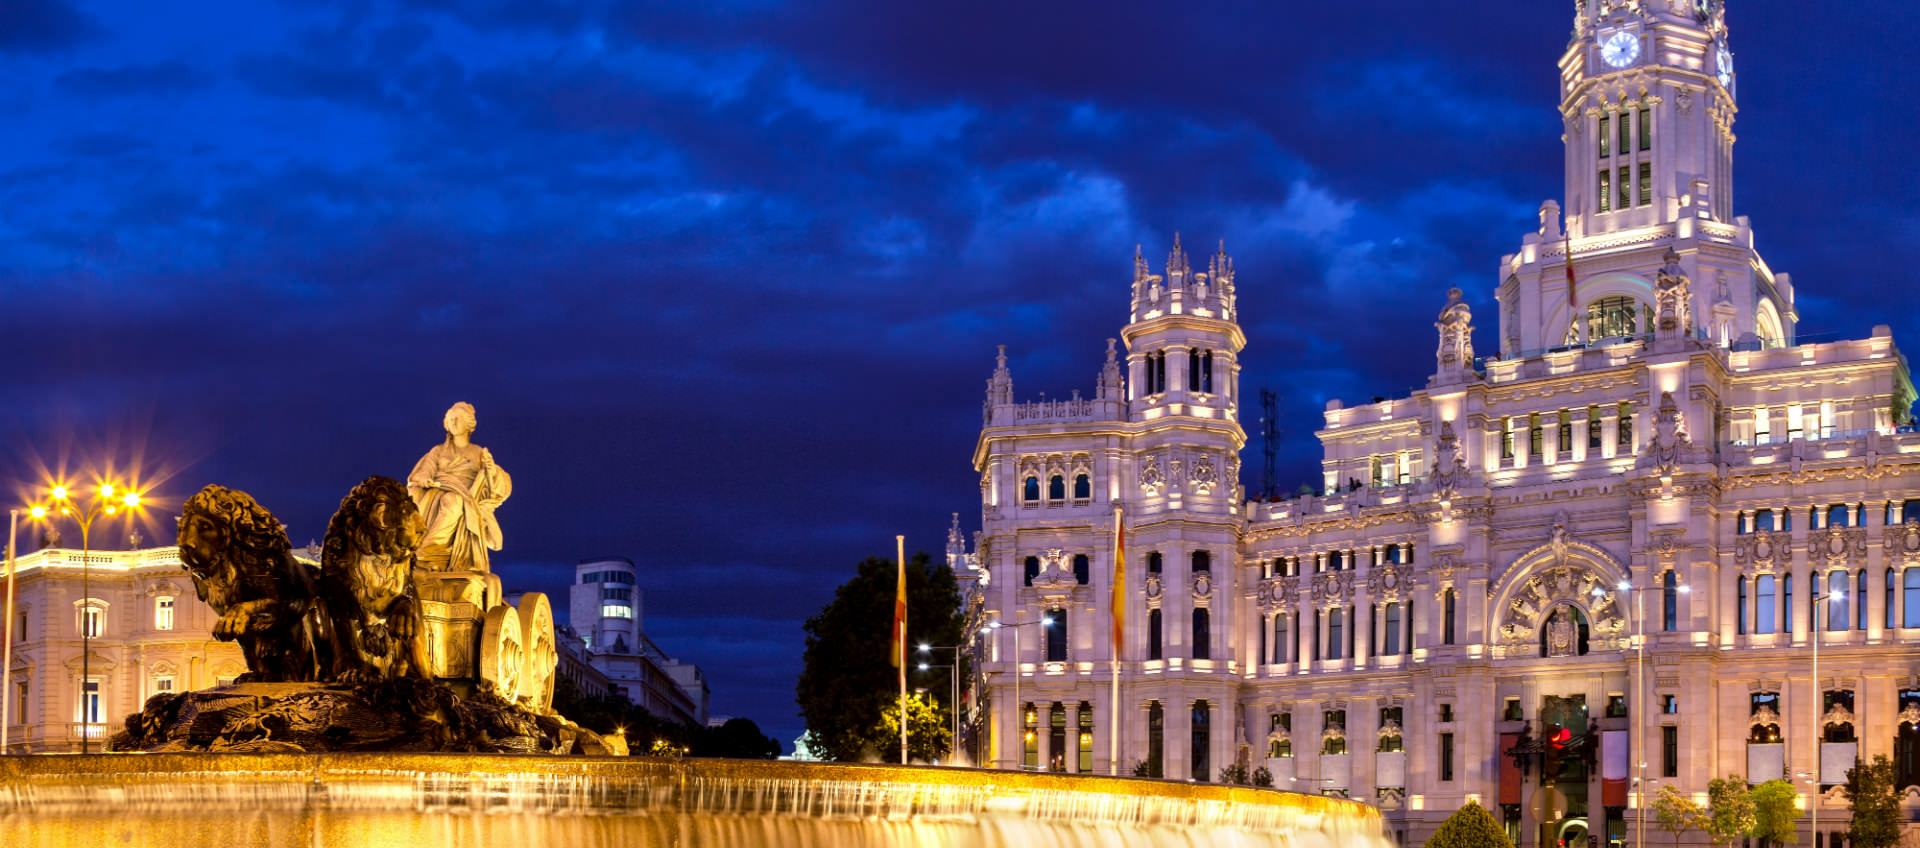 Square_Cibeles_palace_madrid_inspiring_tour